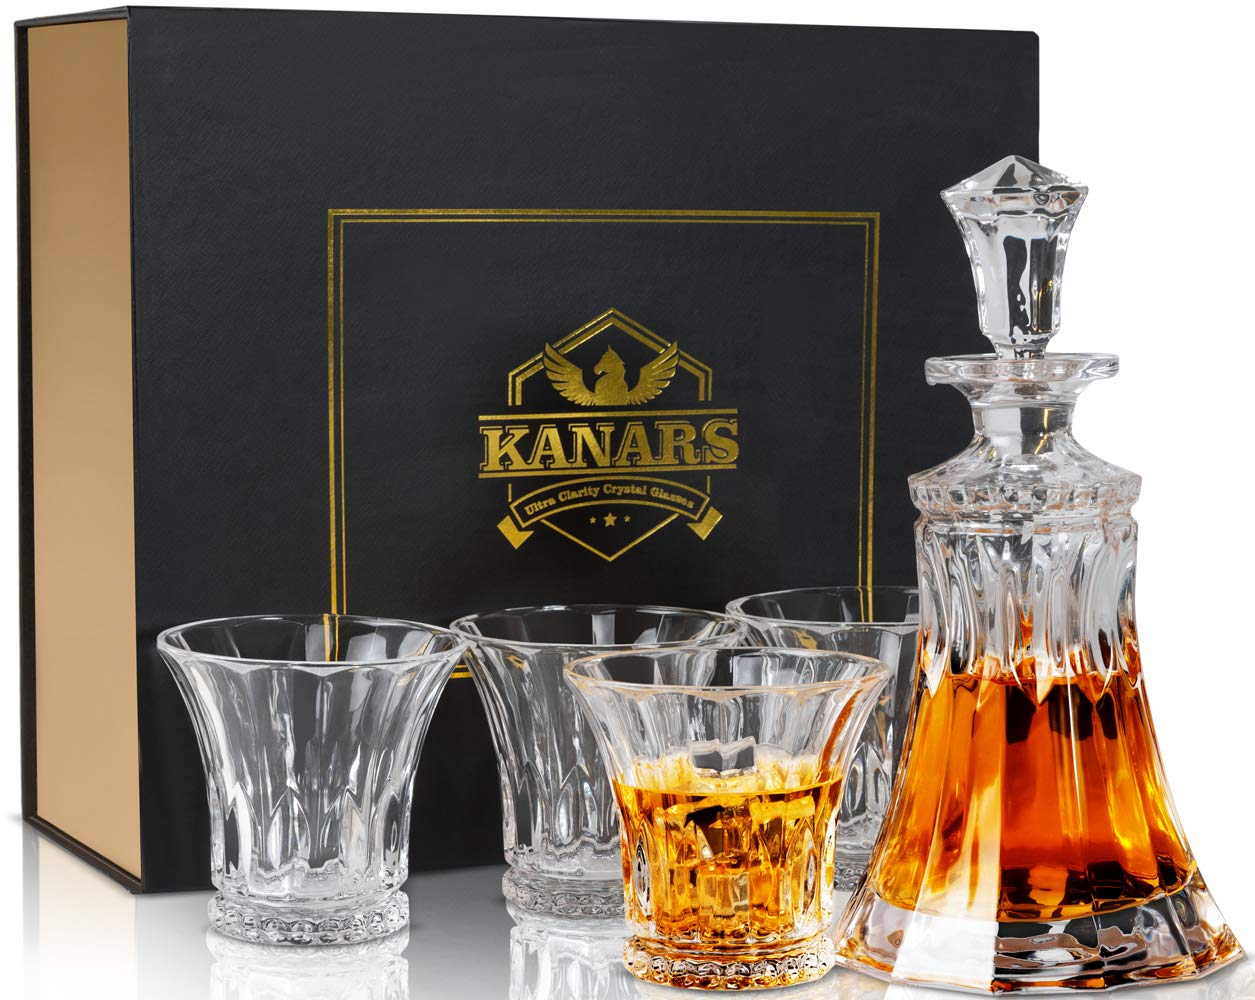 KANARS Lead Free Crystal Whiskey Decanter and Glasses Set with Unique Elegant Gift Box for Liquor, Scotch or Bourbon, 5 - Piece